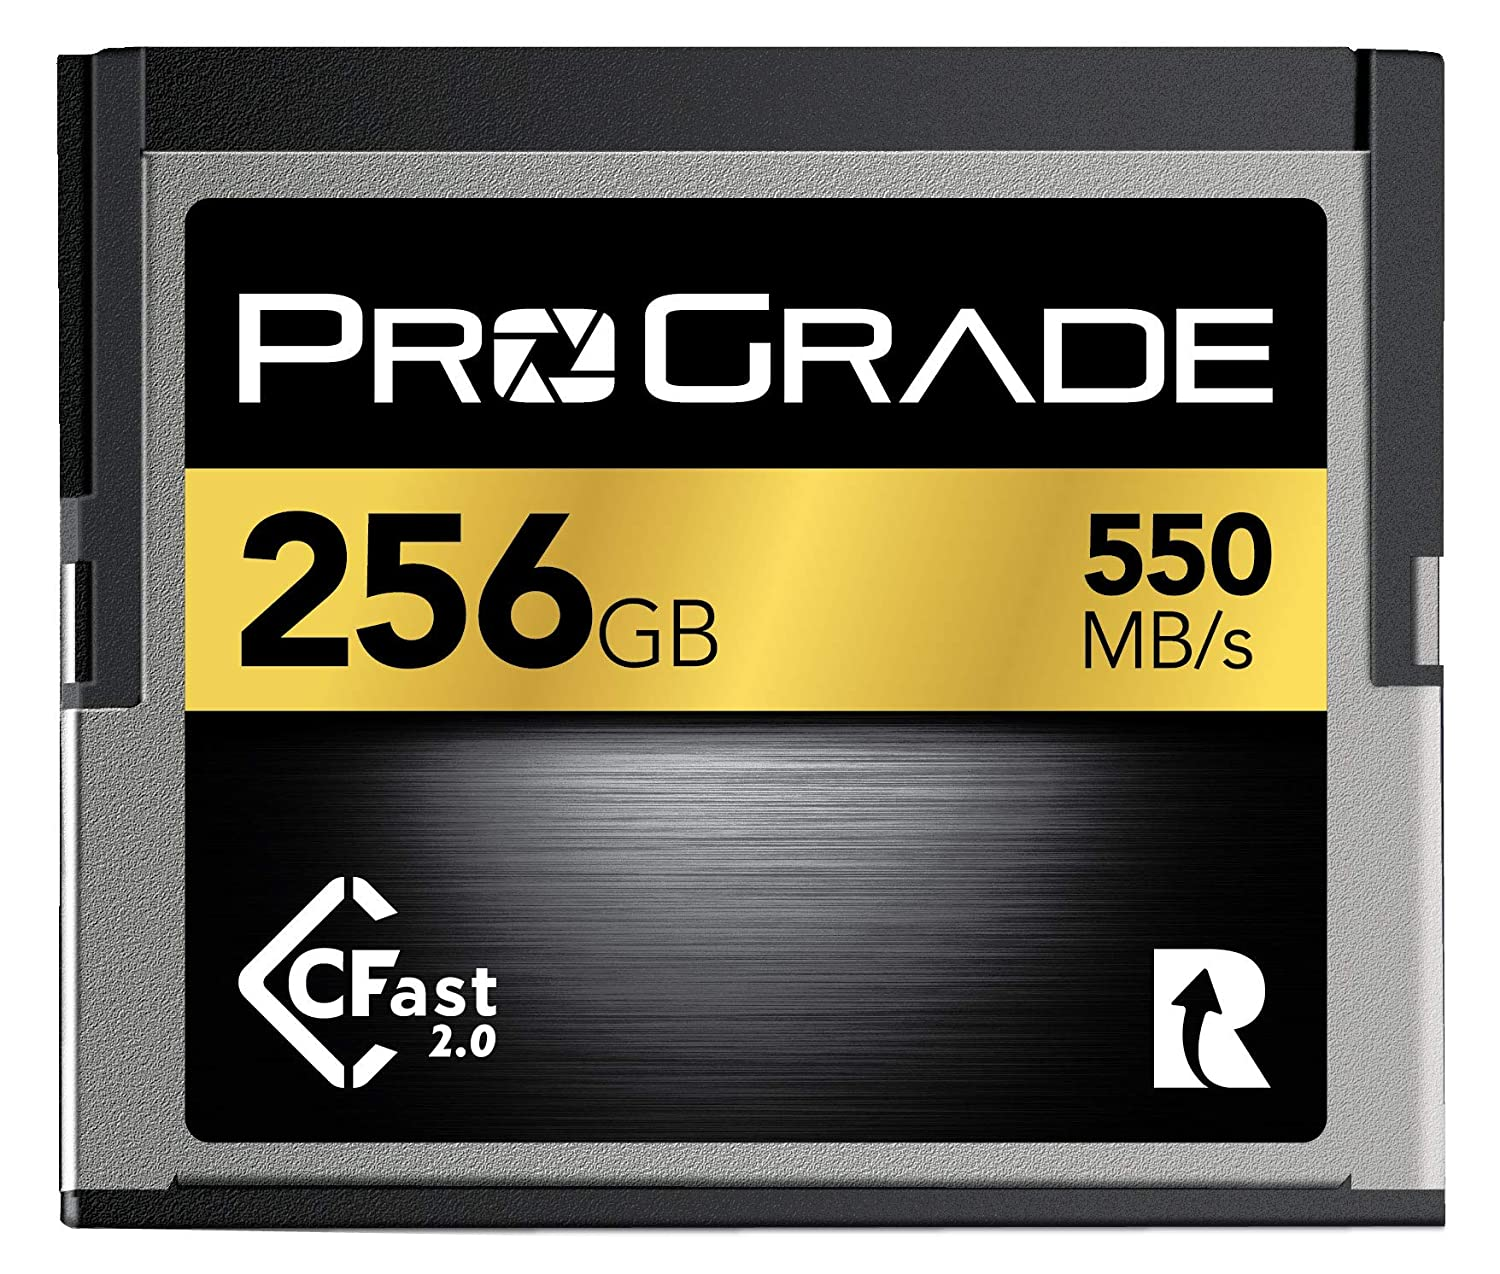 Amazon.com: ProGrade Digital CFast 2.0 tarjeta de memoria ...